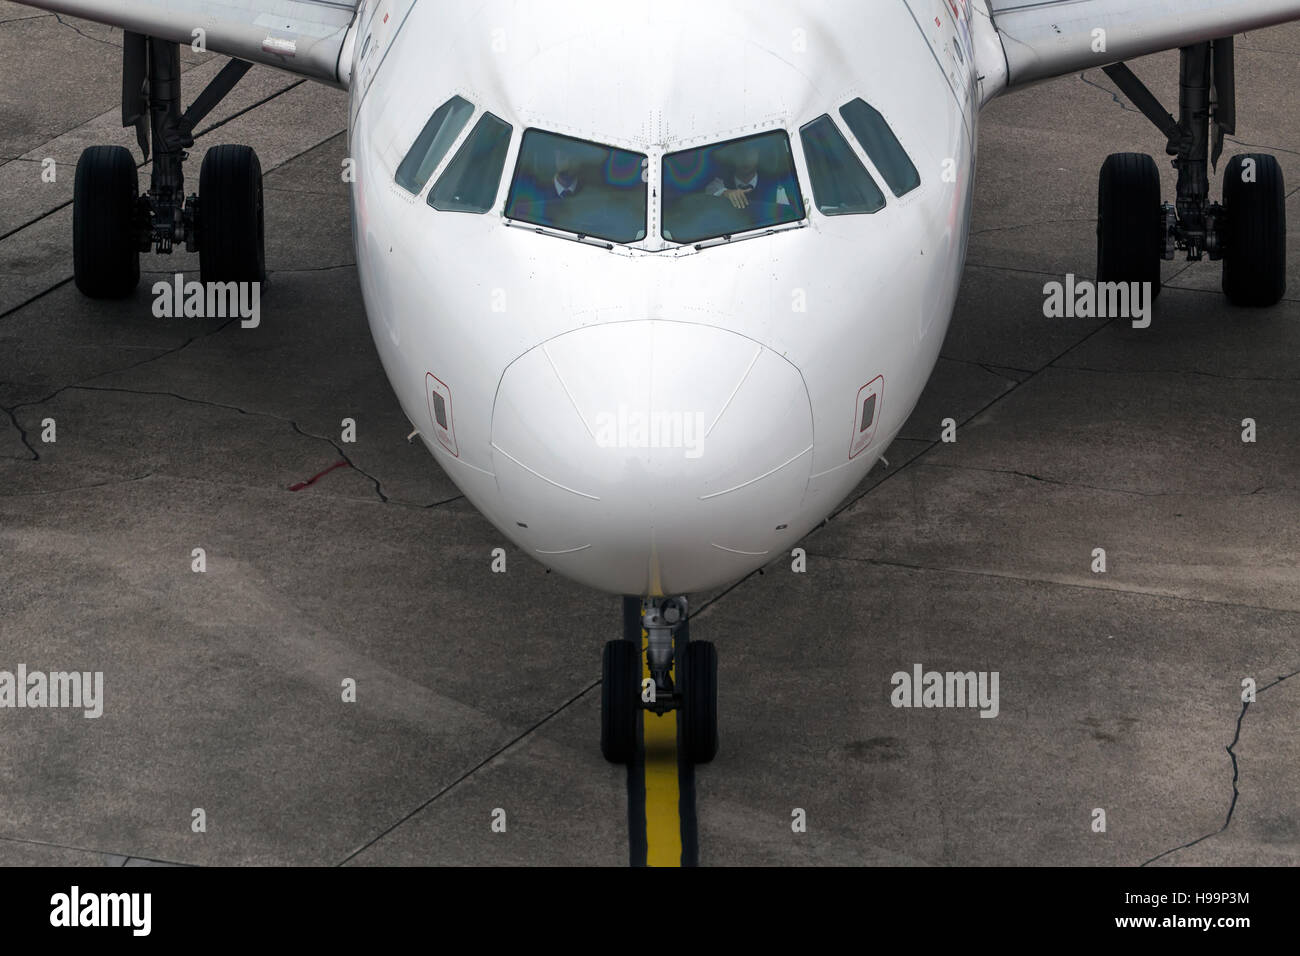 Closeup view of an aircraft preparing to take off - Stock Image